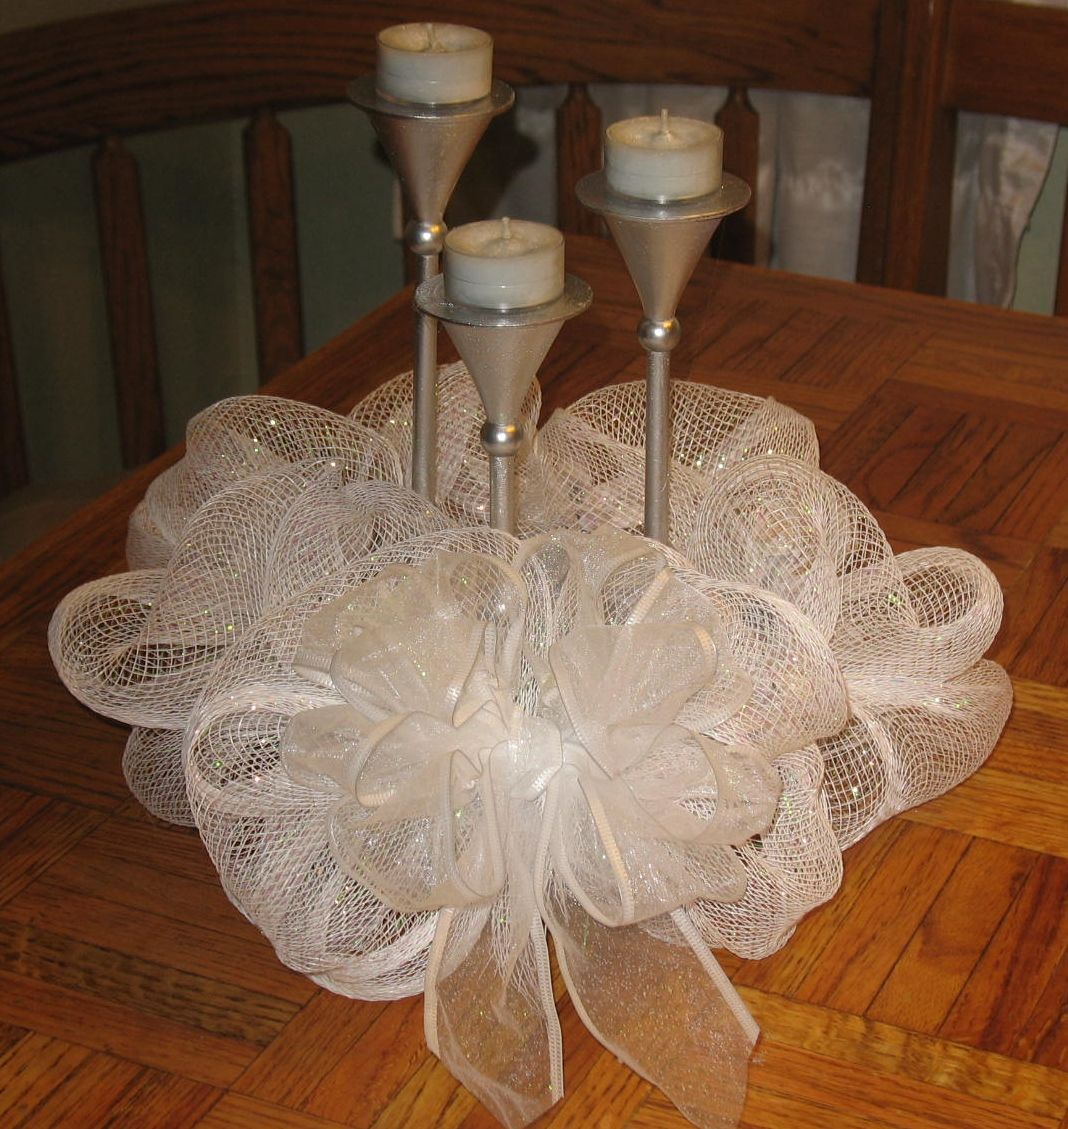 Deco Mesh Centerpiece White and Silver  Deco Mesh Wreaths